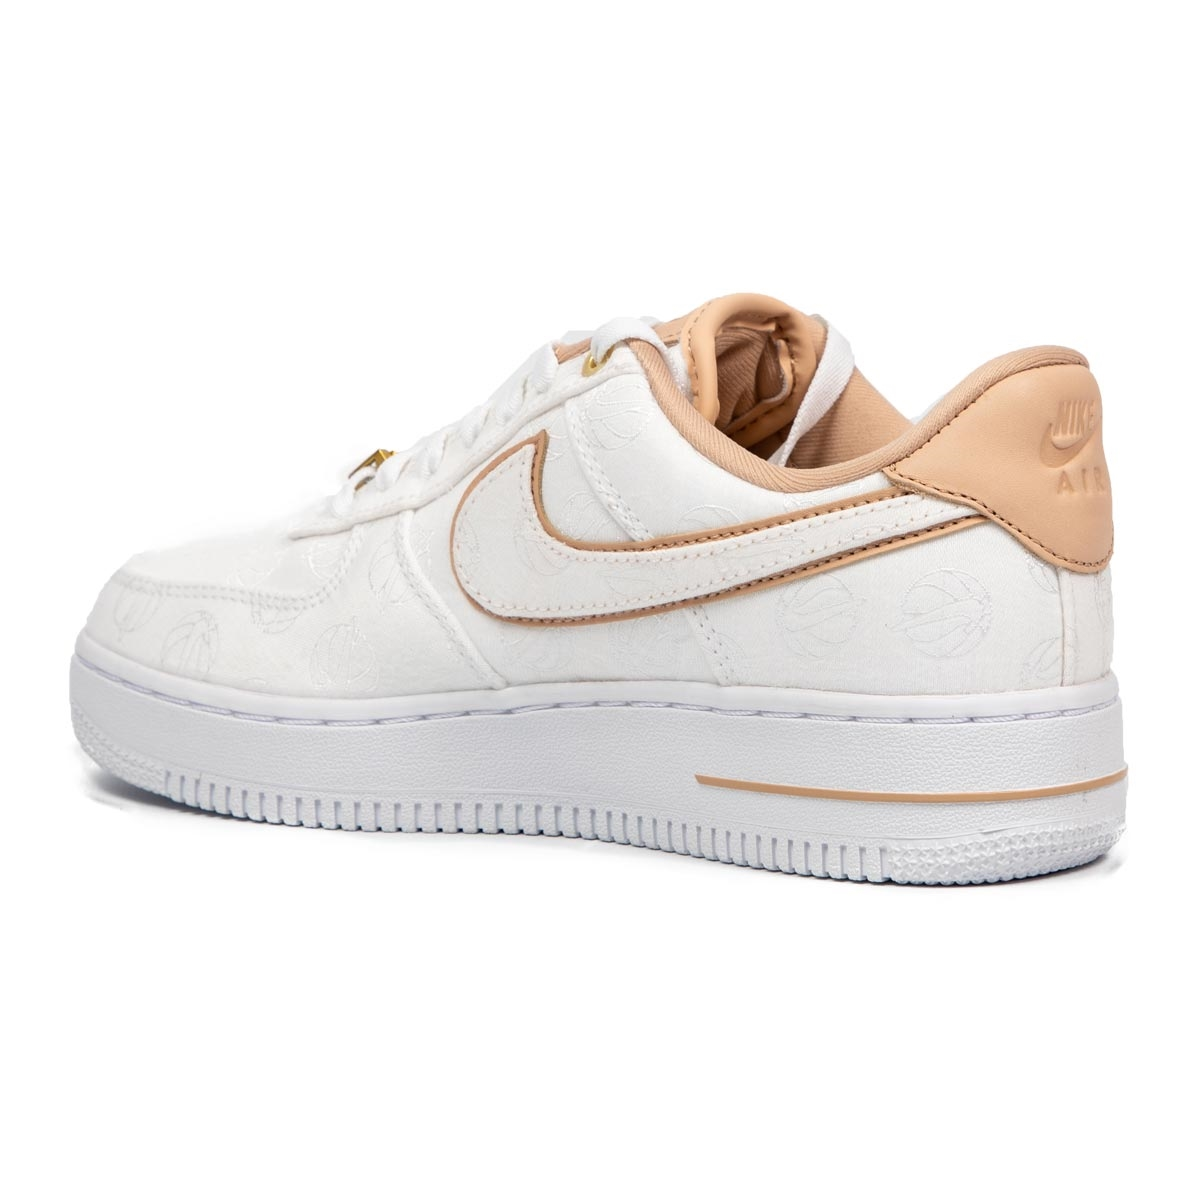 Nike Air Force 1 Low 07 Lux 898889 102 Release Info | Nike